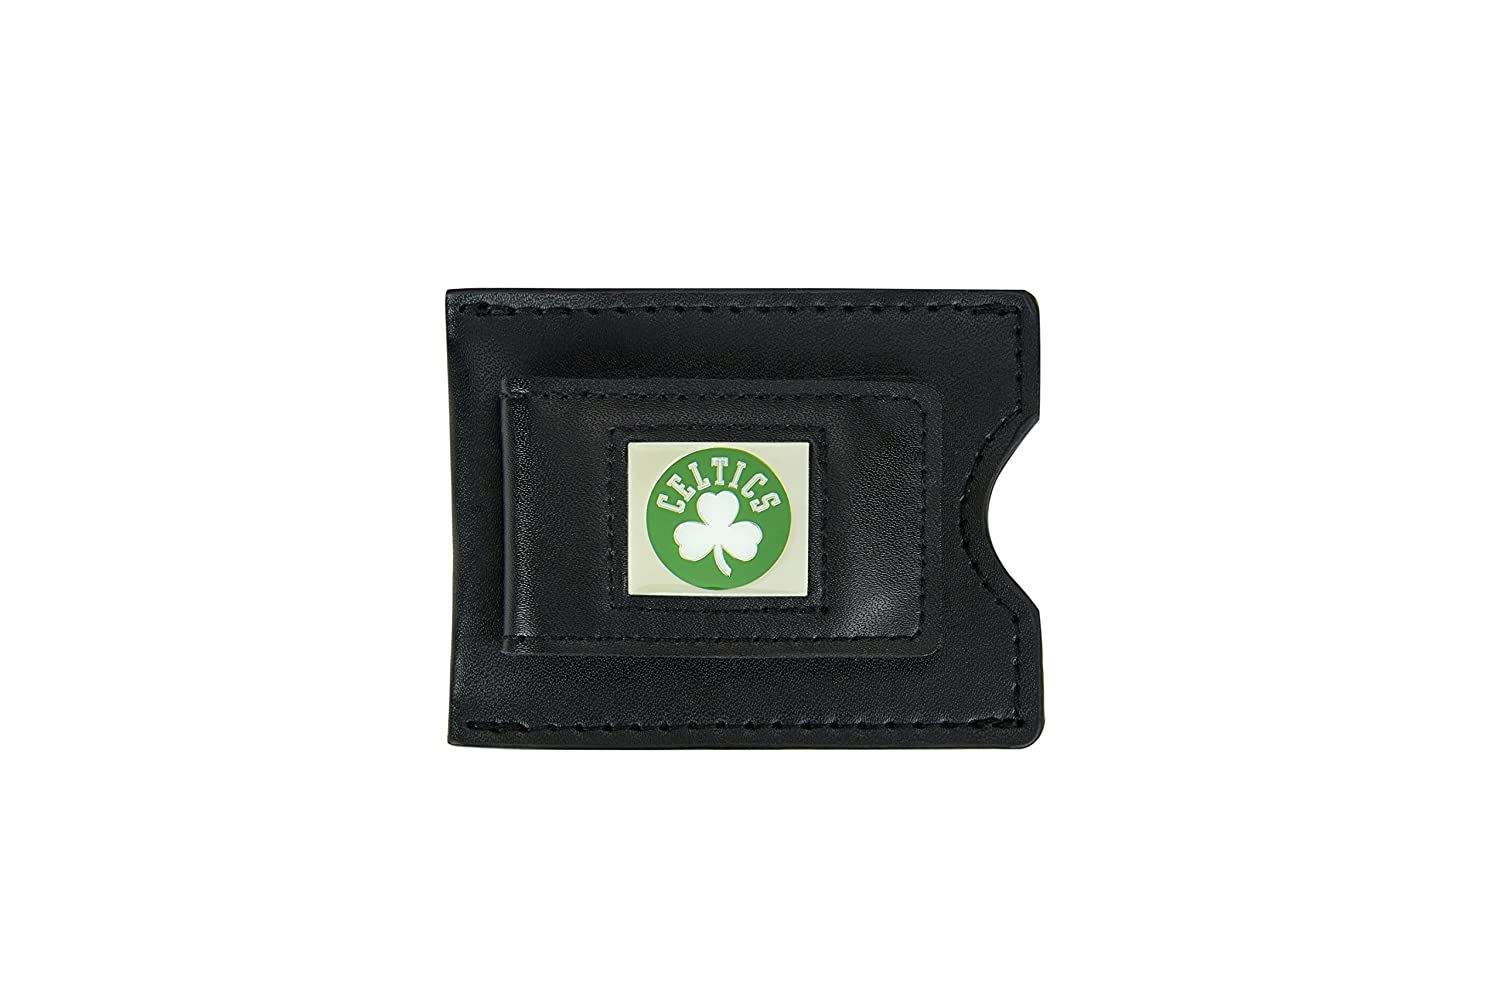 nba-boston-celtics-leather-money-clip-card-case